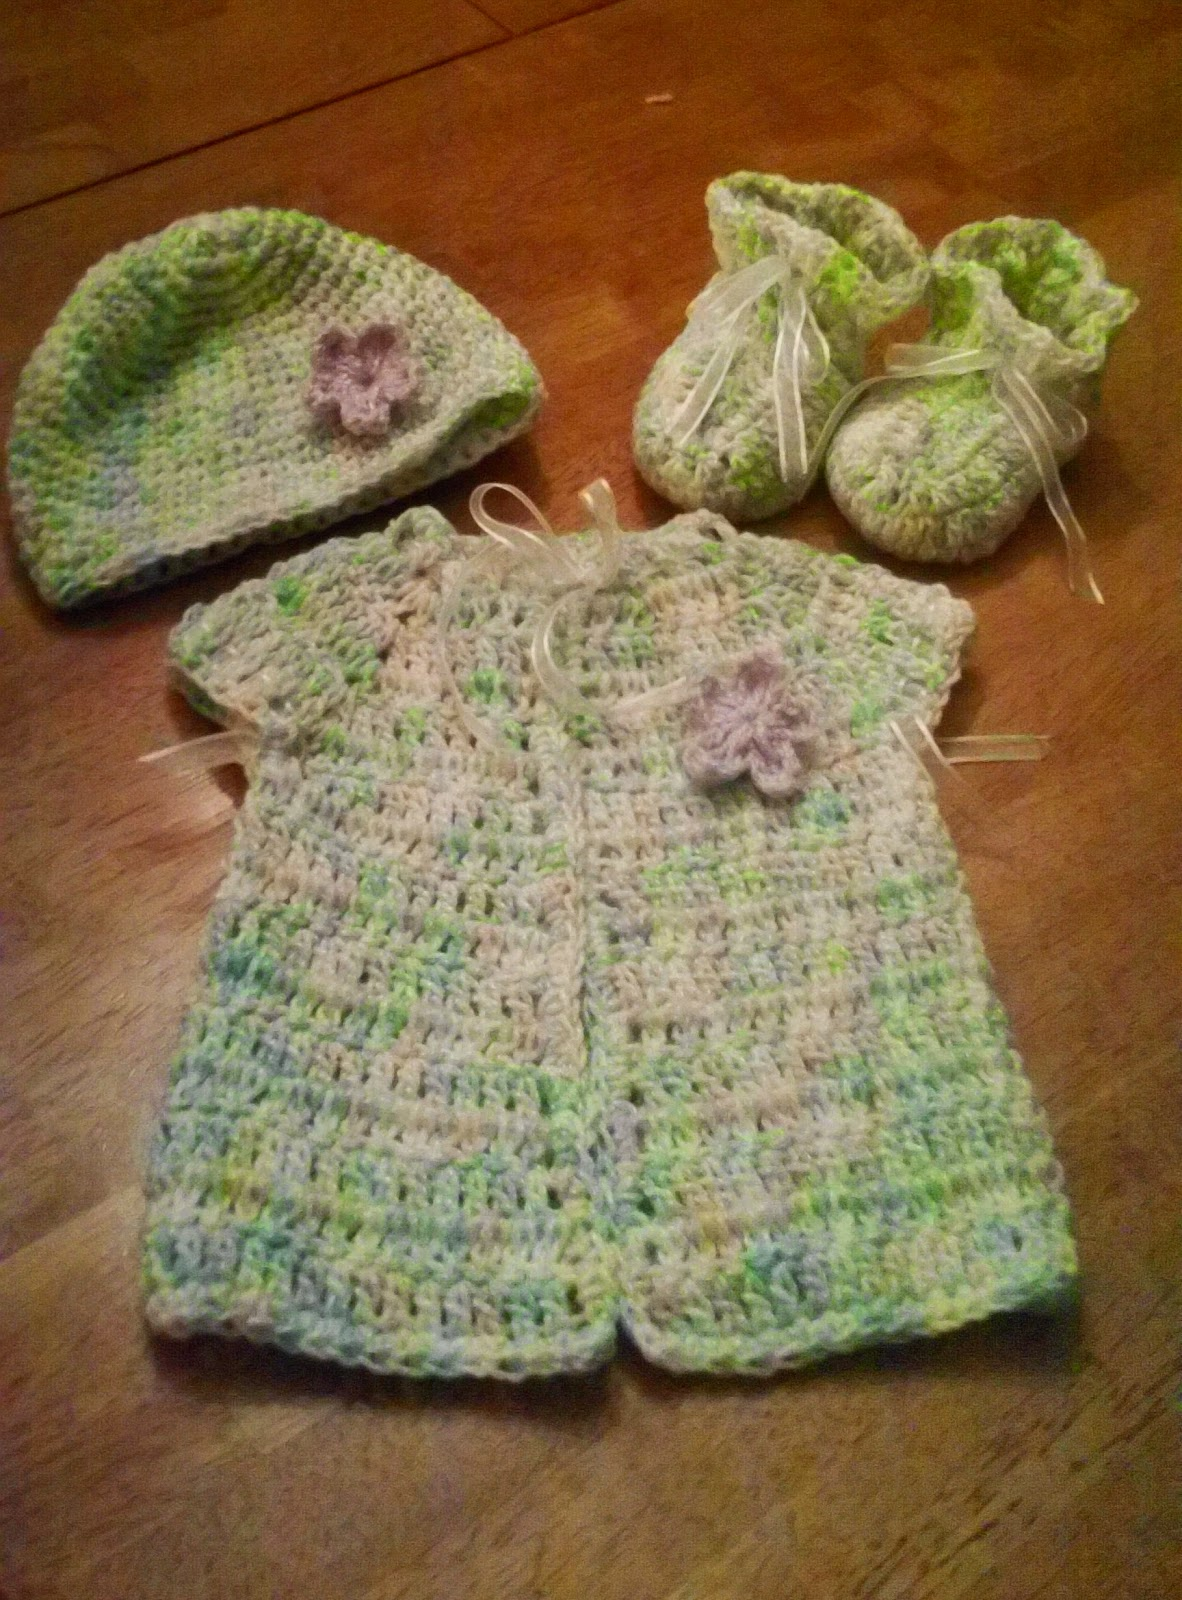 janie crochet designs: crocheted baby sweater,hat and ...